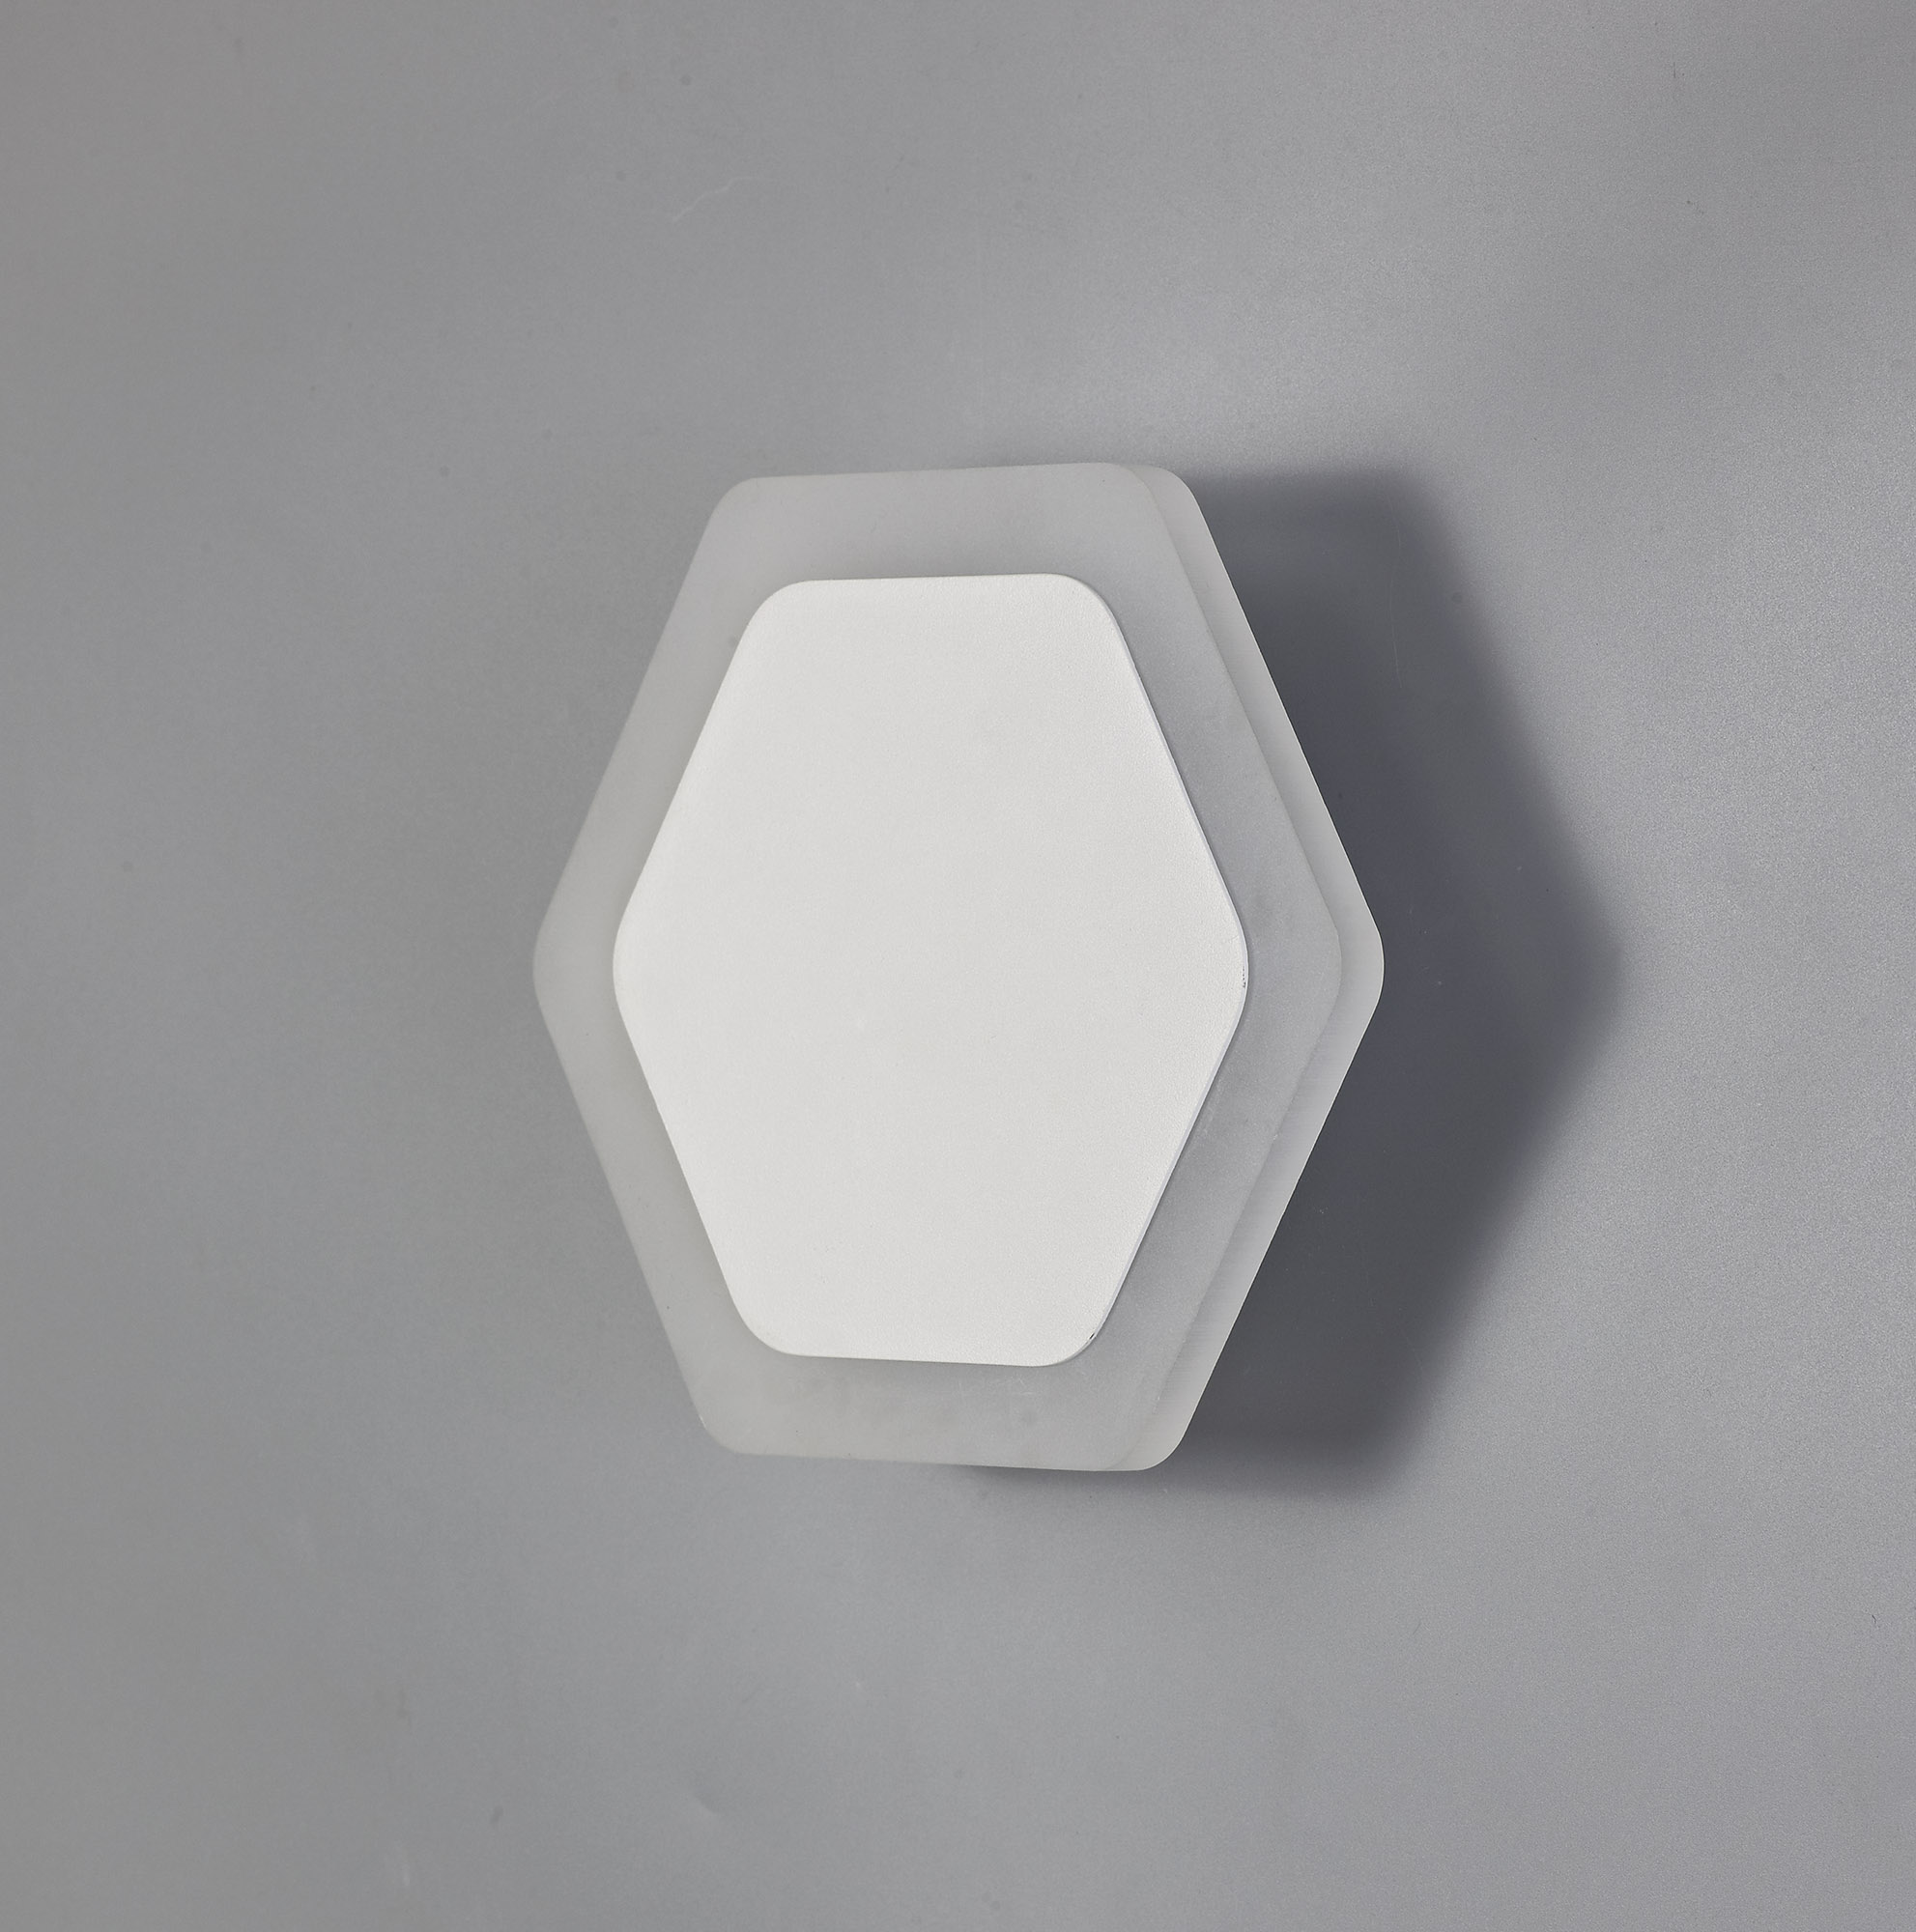 Magnetic Base Wall Lamp, 12W LED 3000K 498lm, 15cm Round 19cm Horizontal Hexagonal Centre, Frosted Diffuser